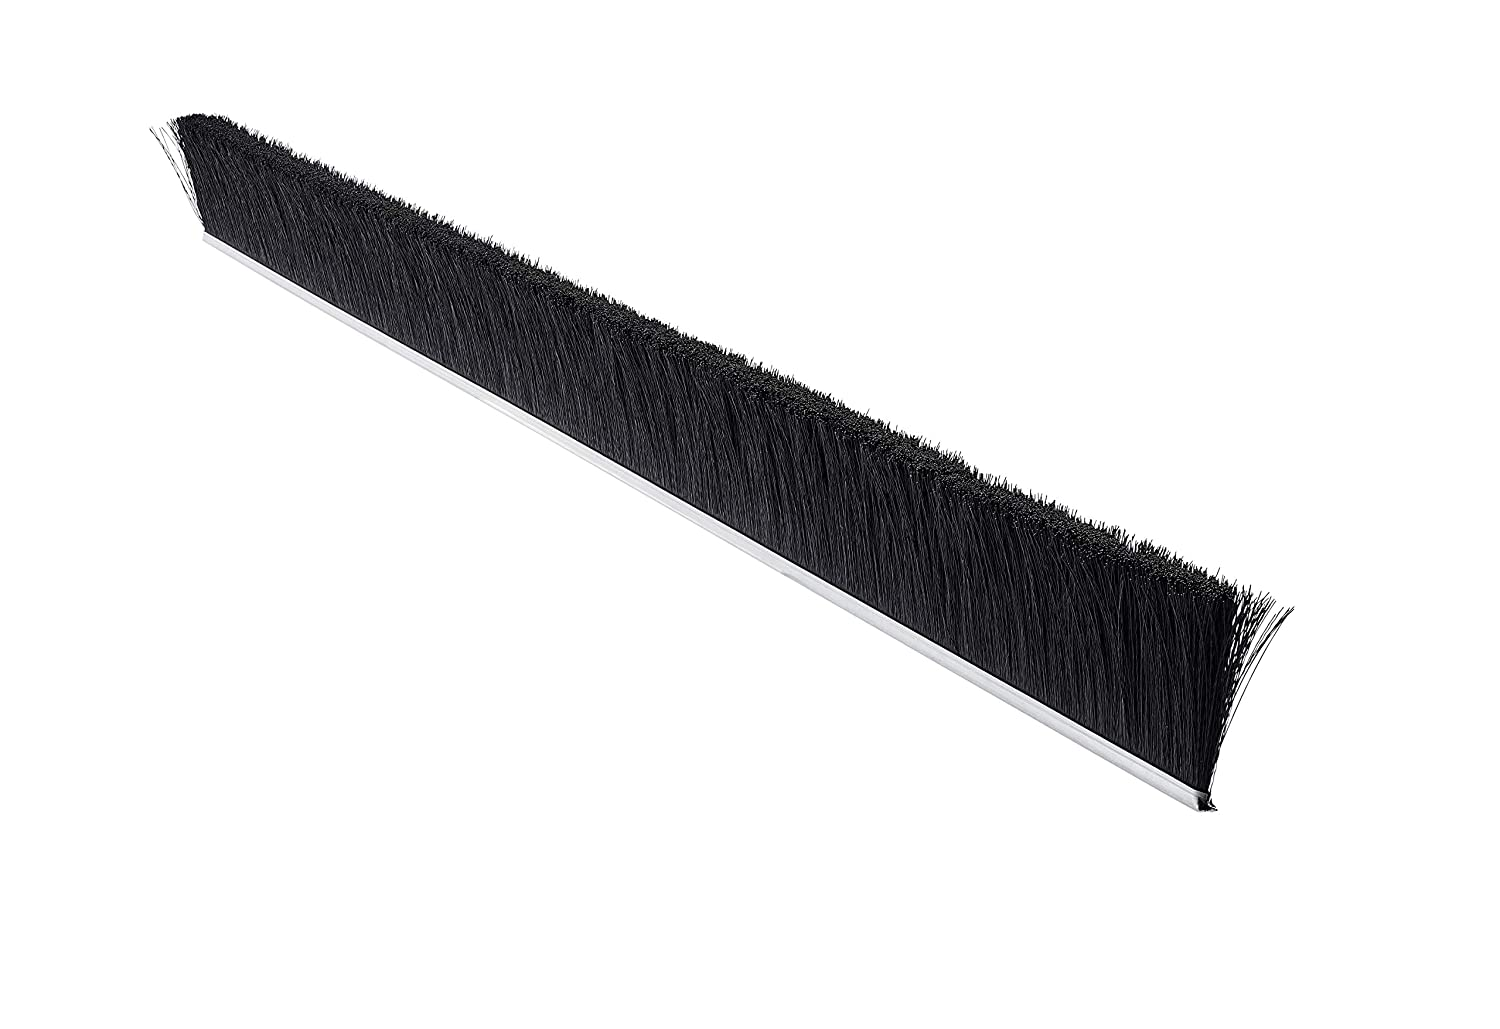 "Tanis Brush MB400236 Metal Back Strip Brush with Light Duty 3/16"" Galvanized Steel Backing, Black Nylon Bristles, 3' Overall Length, 2"" Trim Length, 0.010"" Bristle Diameter"